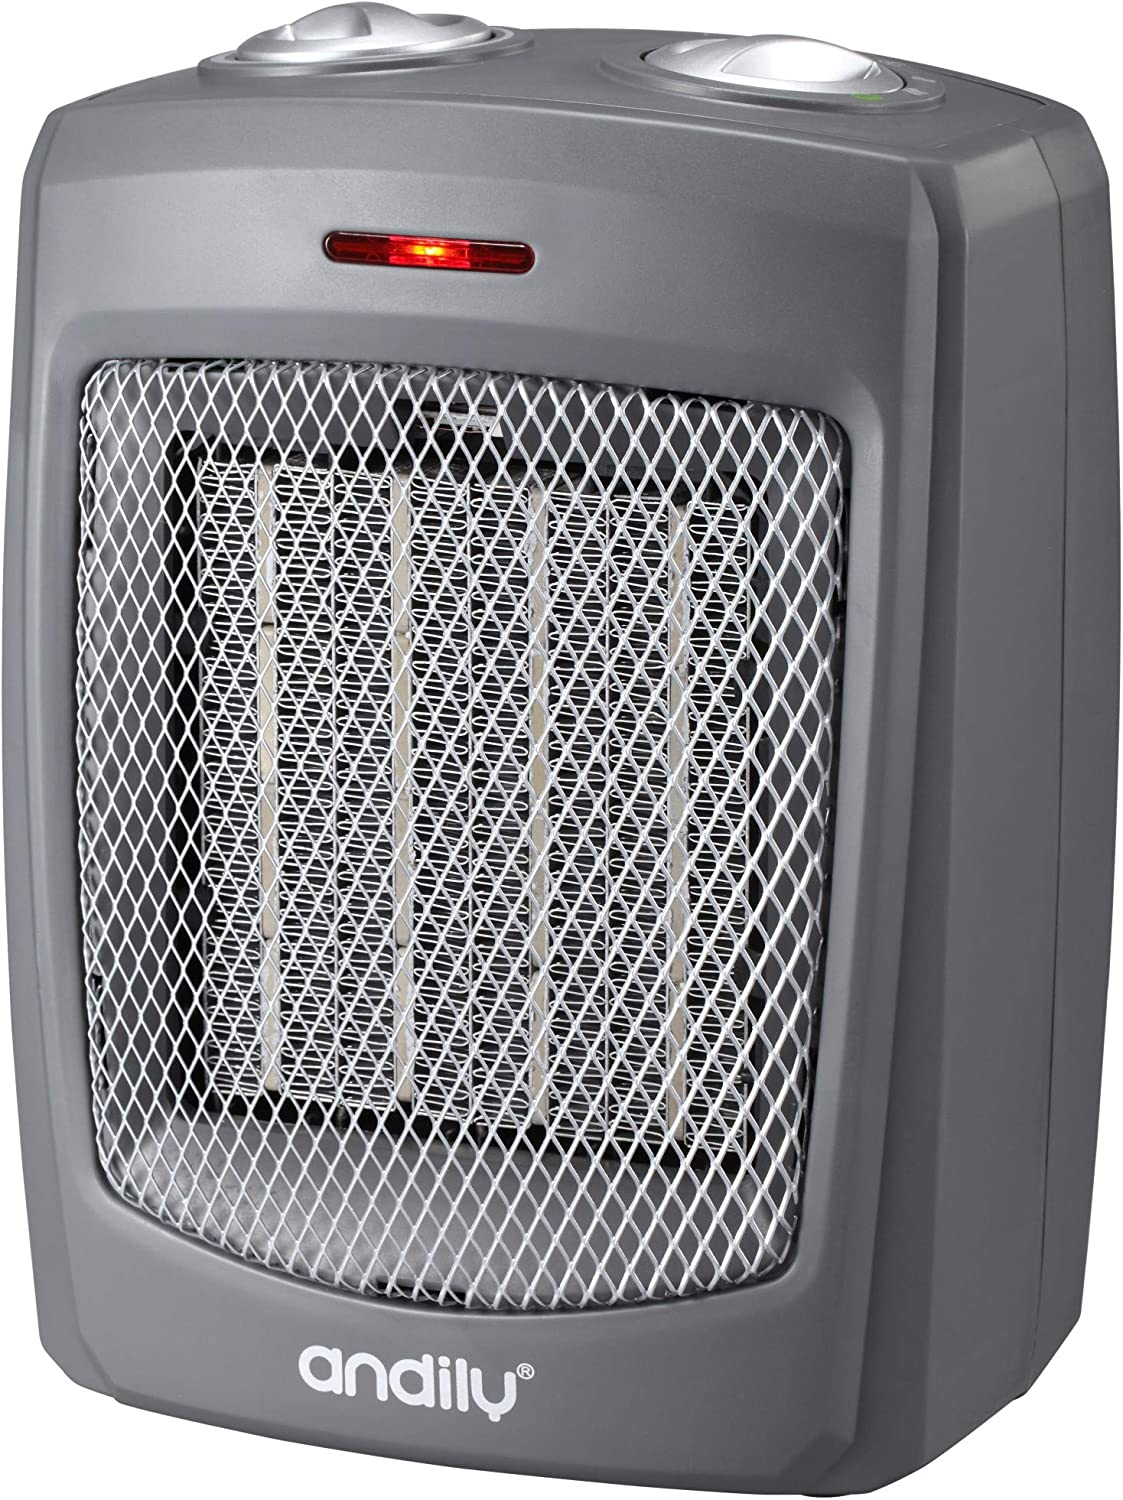 andily Portable Space Heater, Up to 260 Square Feet, Adjustable Thermostat, Ceramic Heater, Energy Save Technology , Rapid Heating, Overheat Protection and Carrying Handle, 4 Modes 750W/1000W/1500W